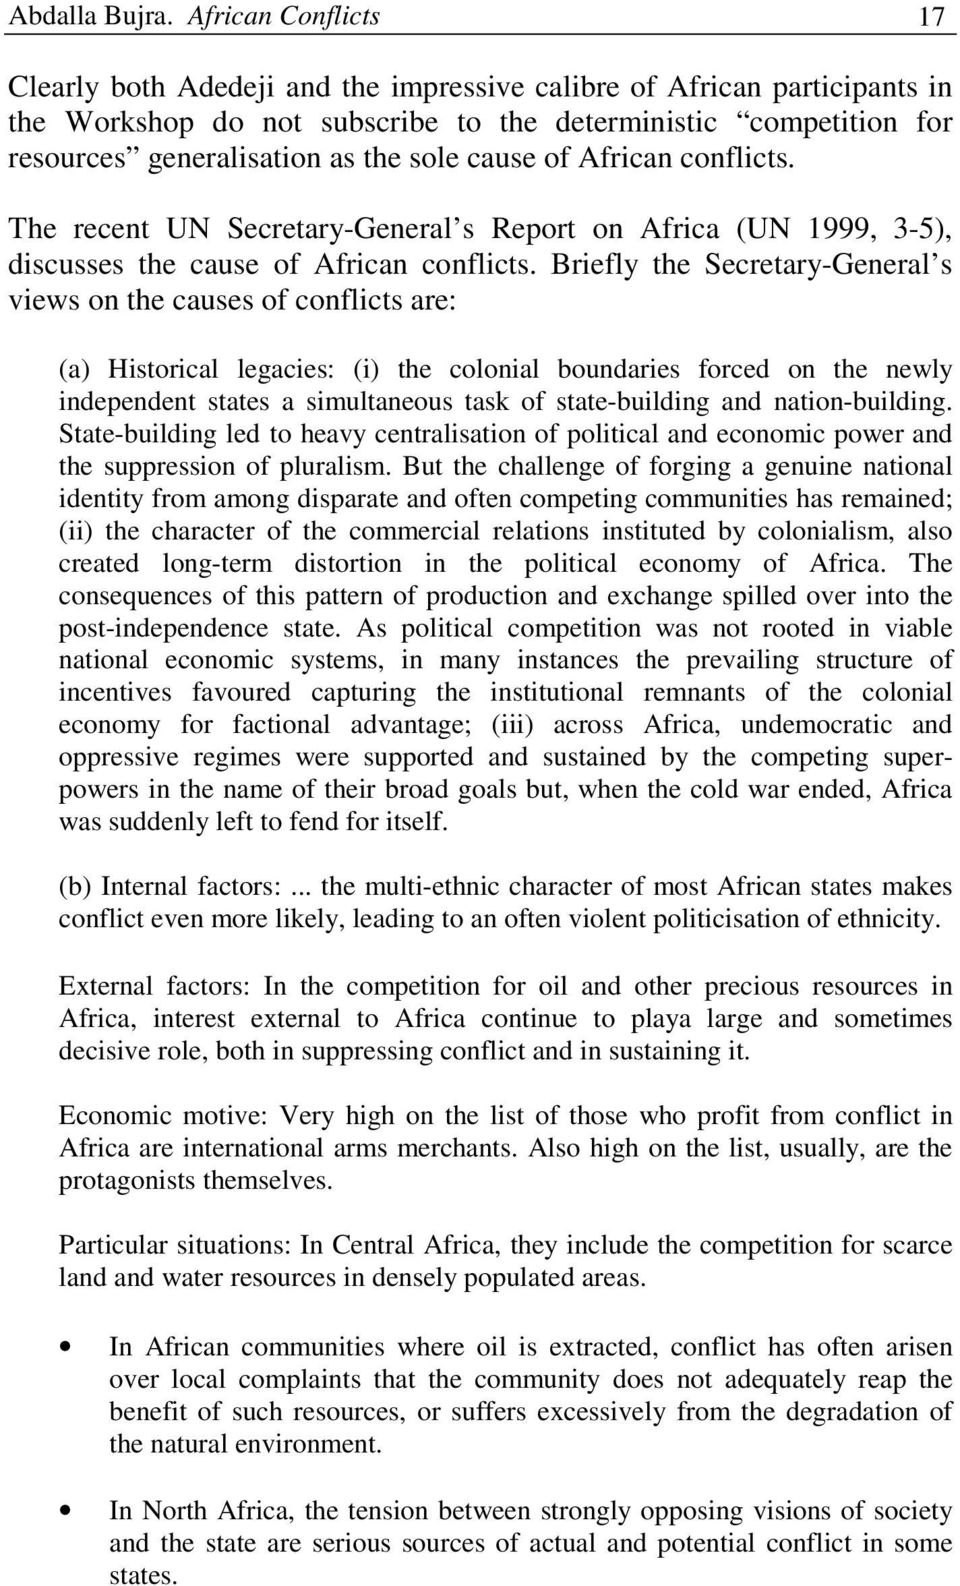 cause of African conflicts. The recent UN Secretary-General s Report on Africa (UN 1999, 3-5), discusses the cause of African conflicts.